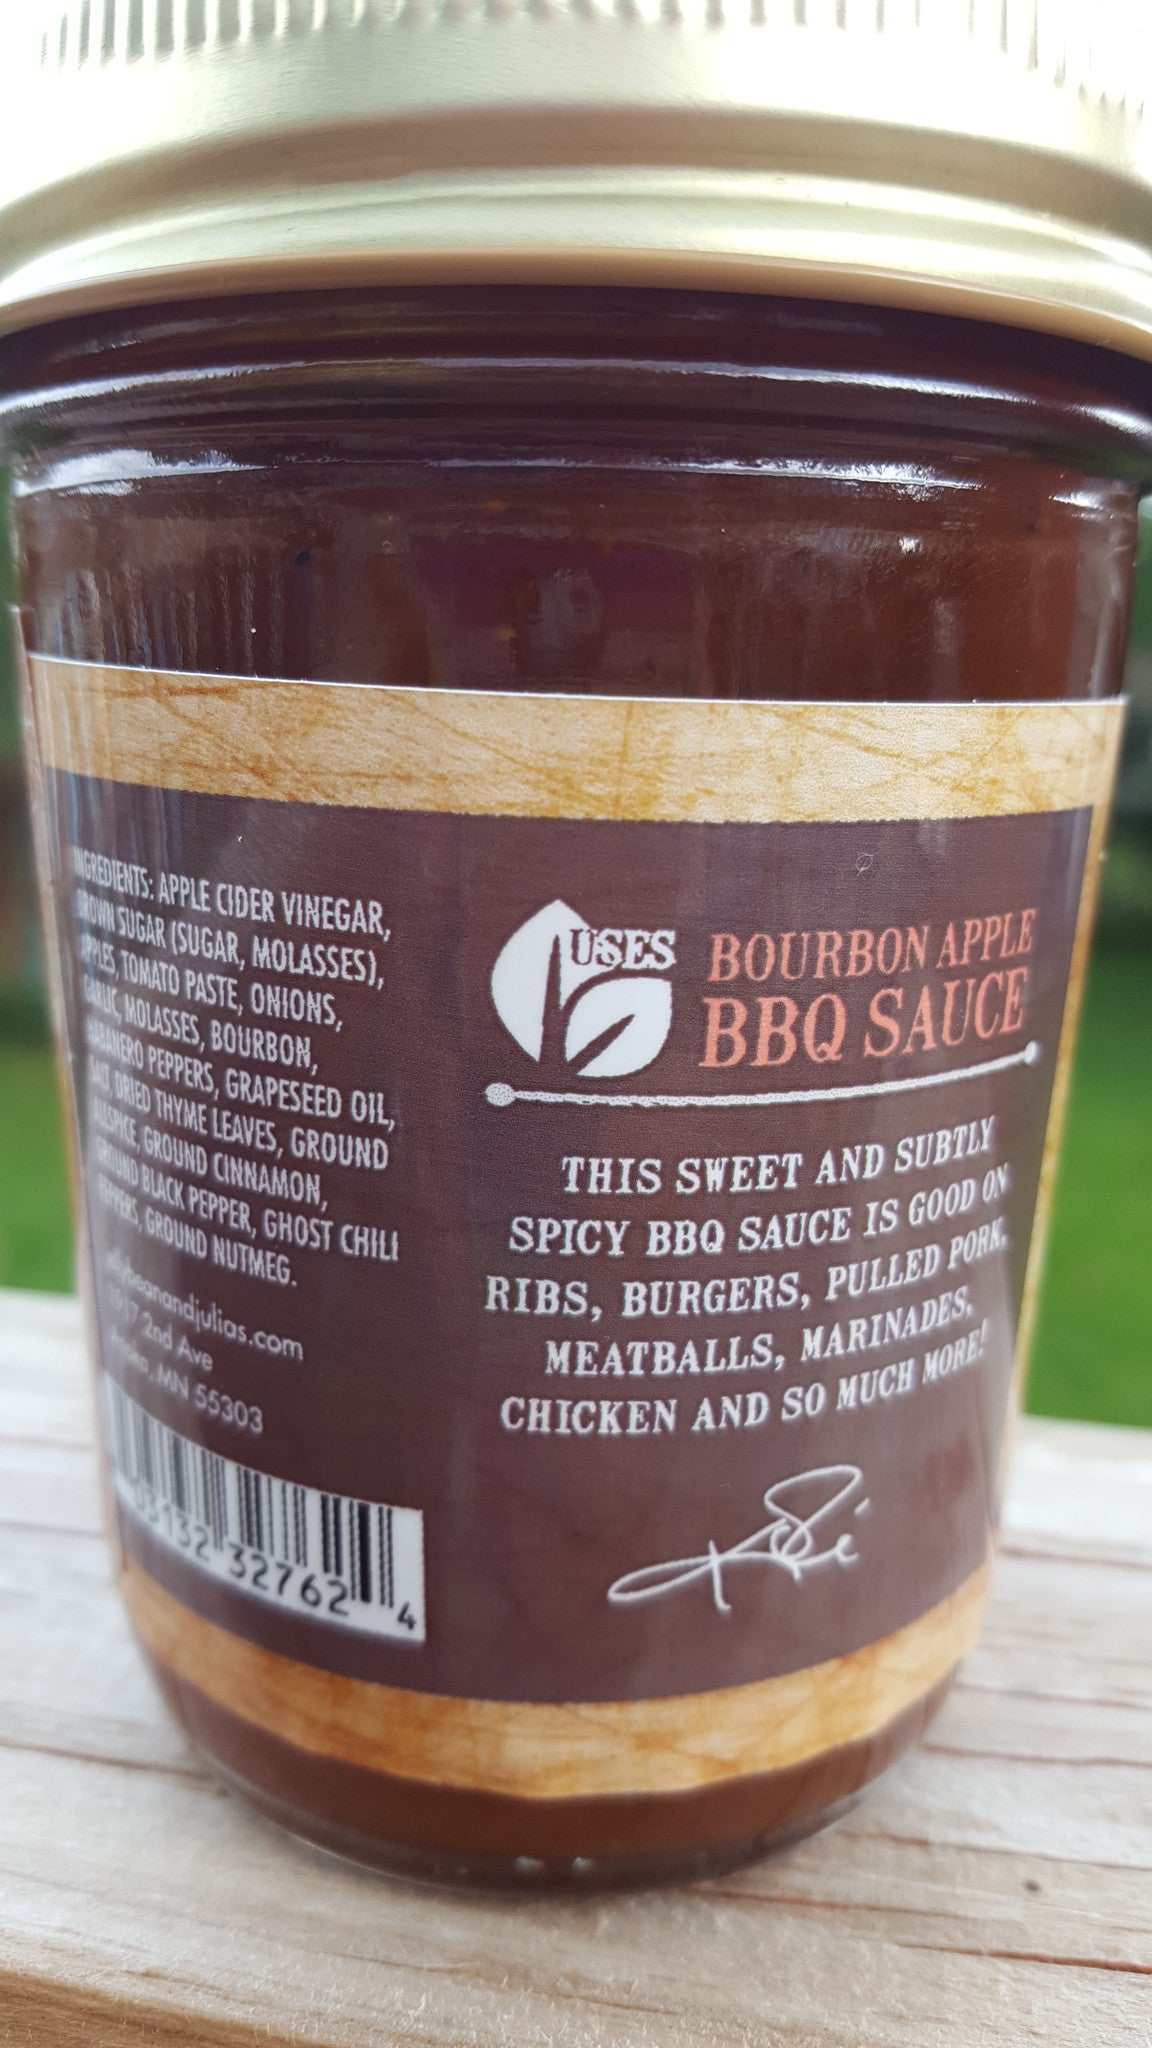 Bourbon Apple BBQ Sauce